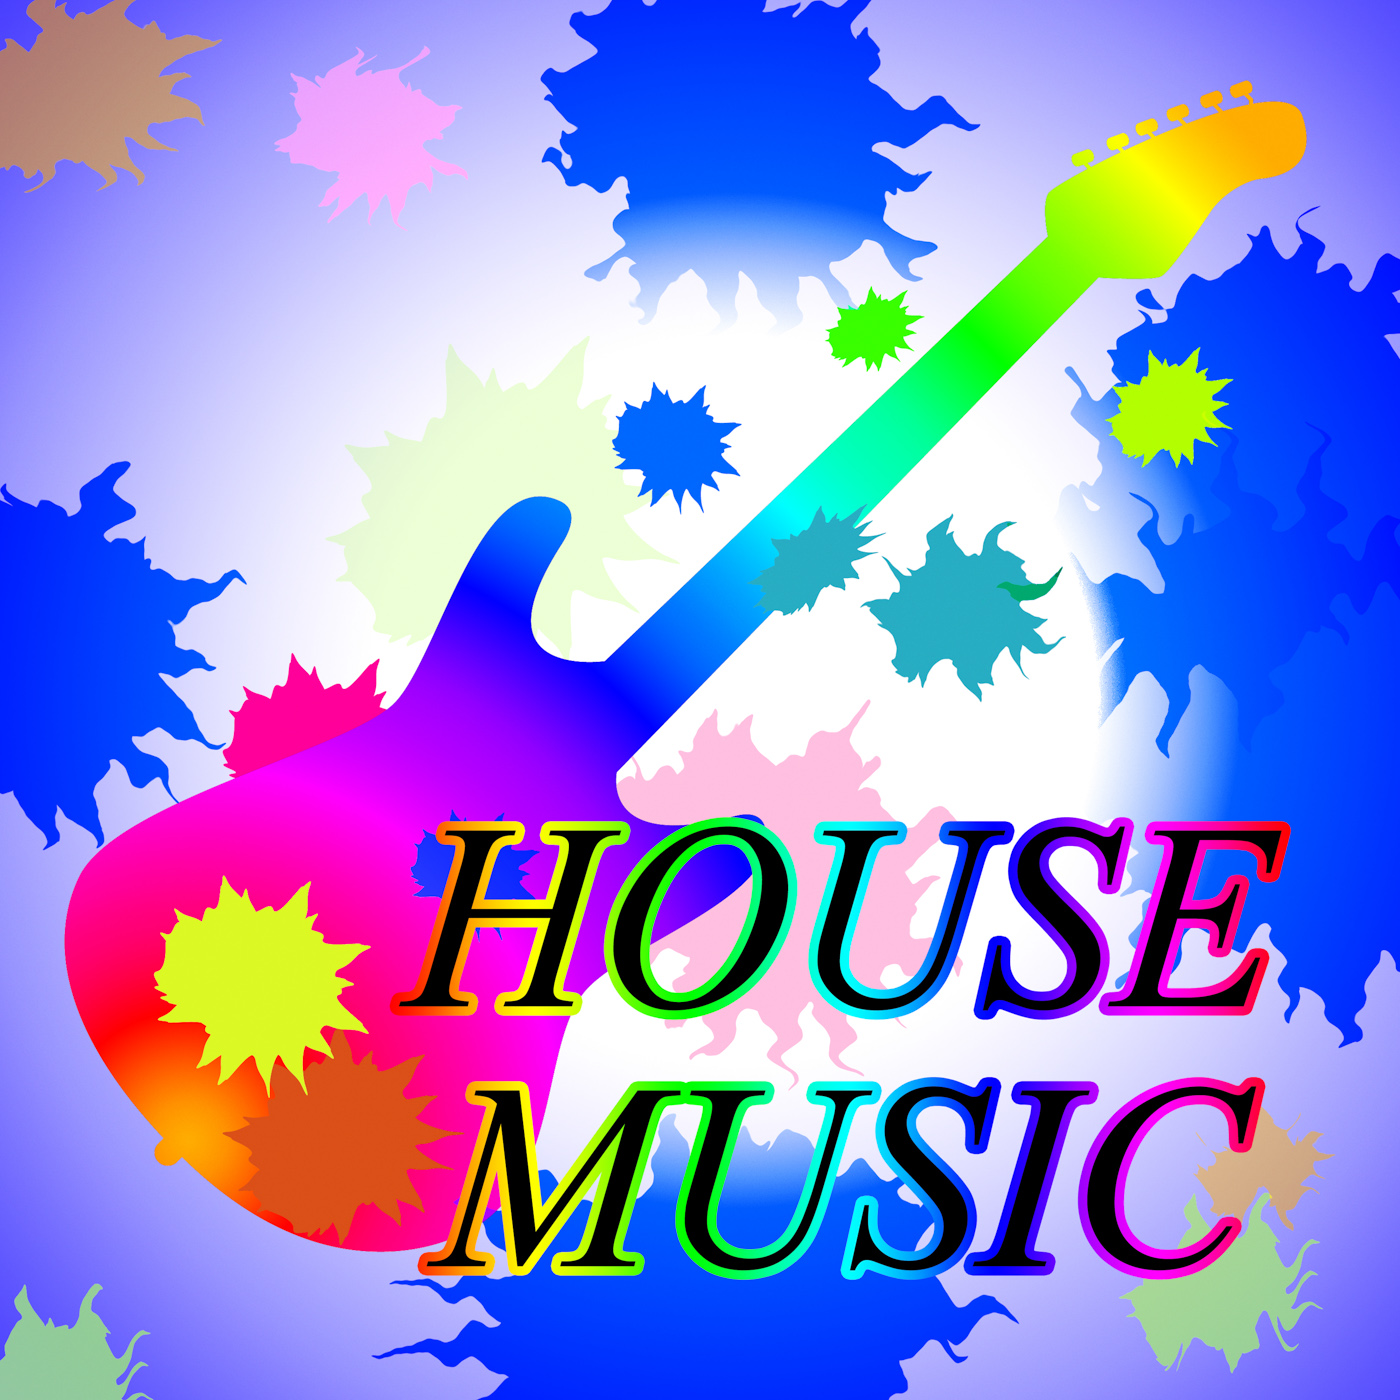 House music indicates sound track and audio photo